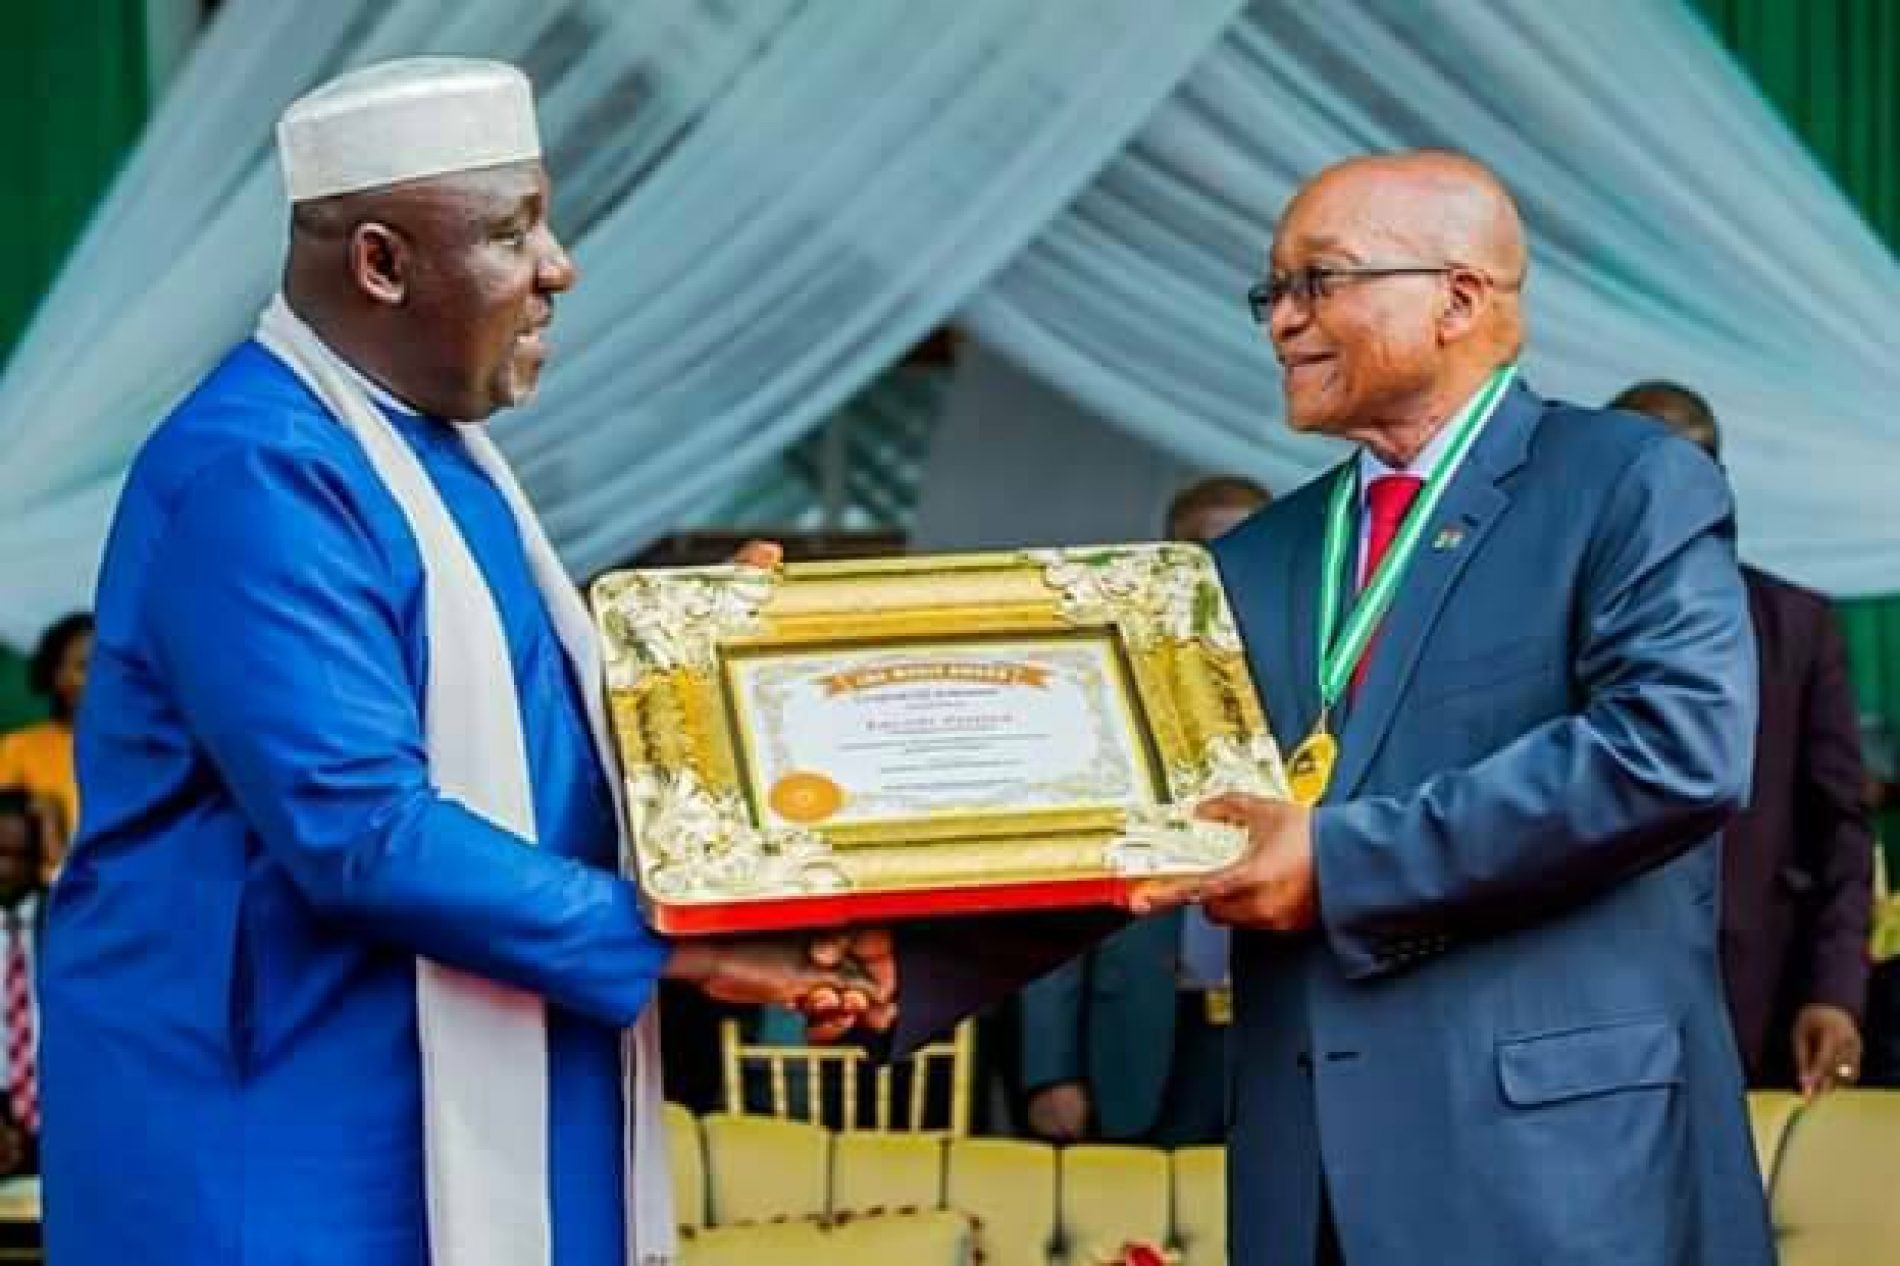 Governor Okorocha partners with President Zuma, honours him with titles, names a road after him in Imo State